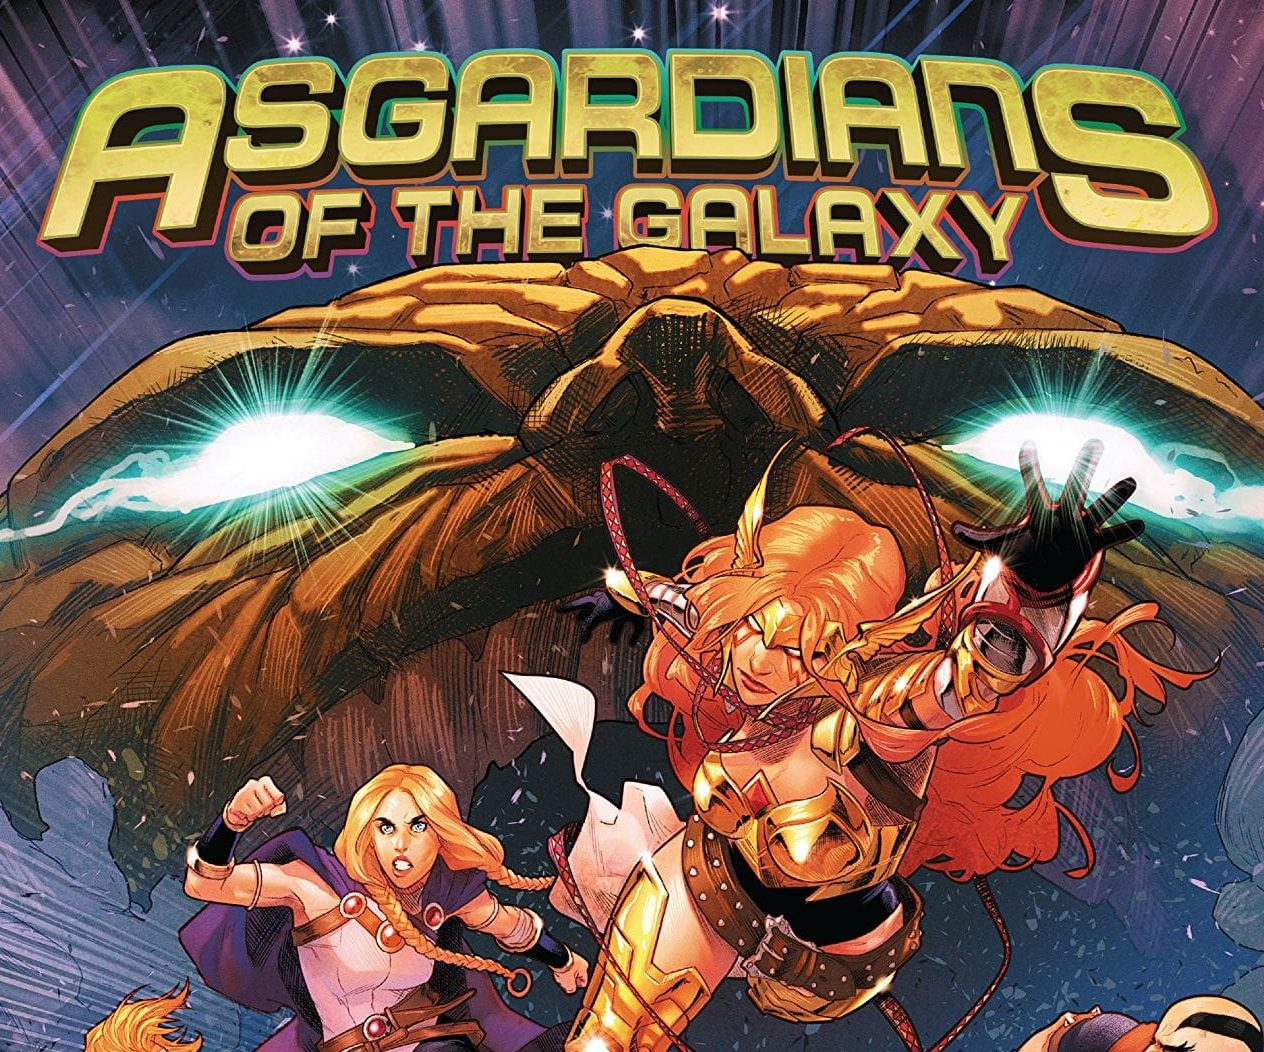 'Asgardians of the Galaxy Vol. 2: War of the Realms' review: could not avoid the tie-in, for better or worse